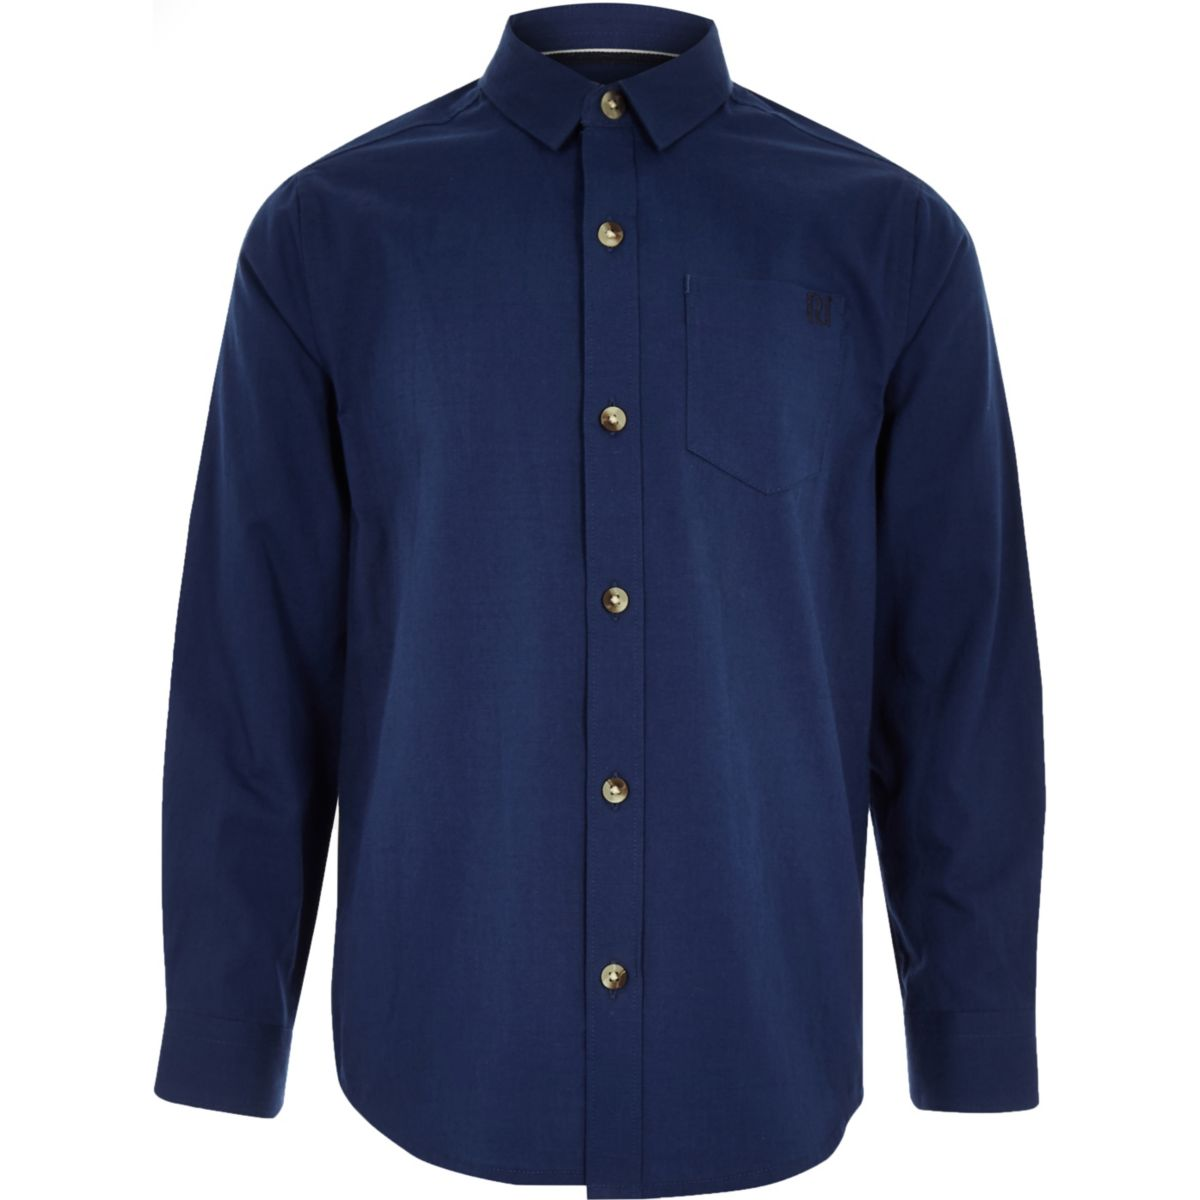 Boys dark blue long sleeve shirt